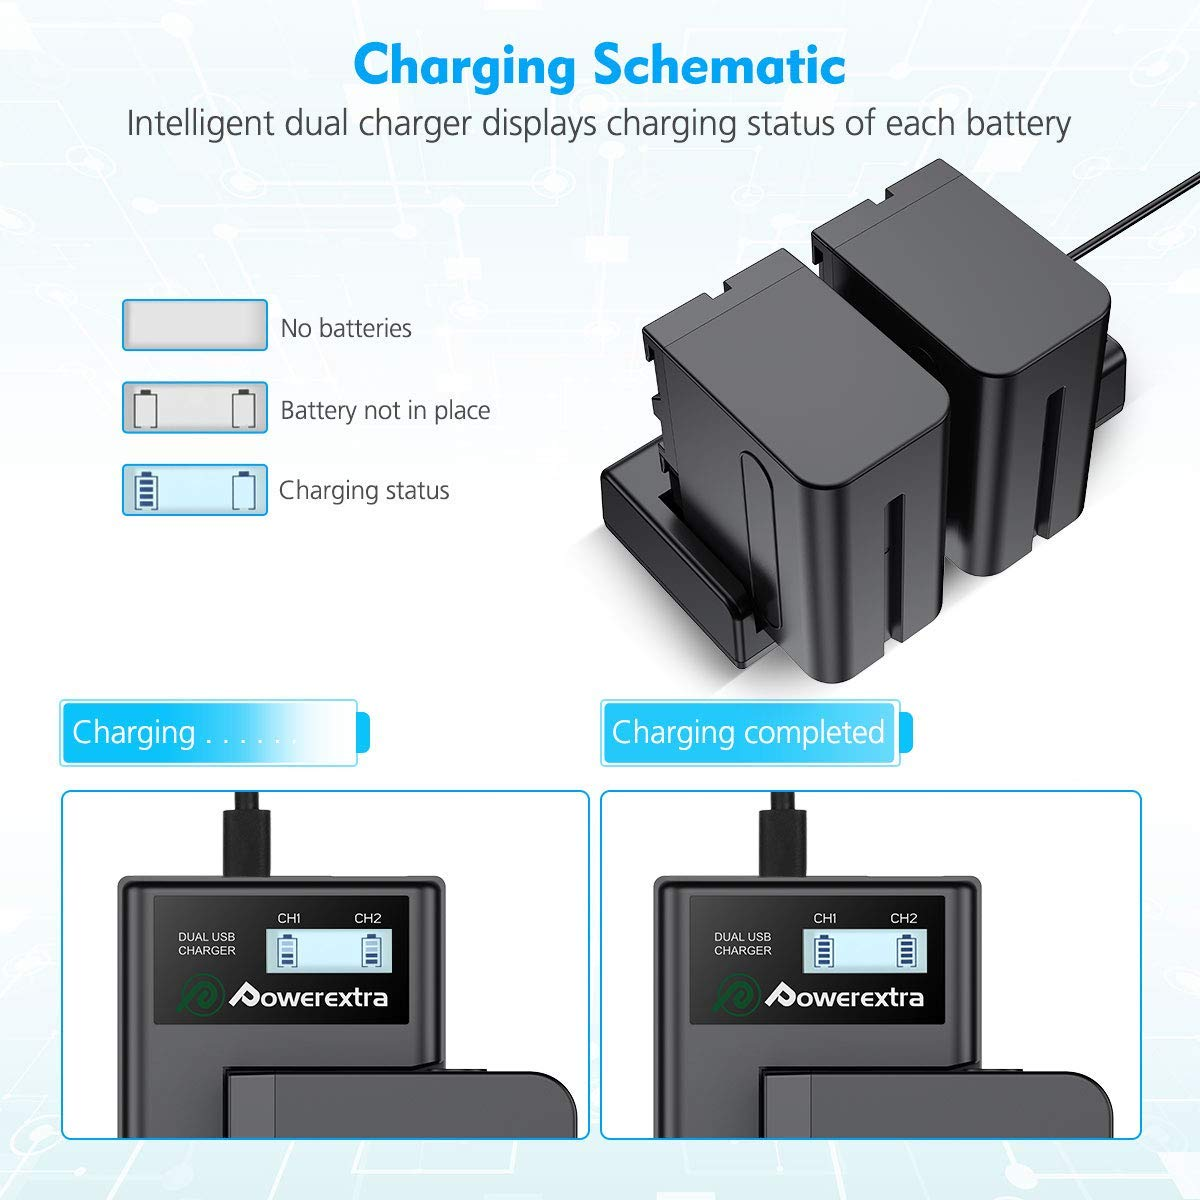 Powerextra 2 Pack Replacement Sony Np F550 Battery With Smart Lcd Usb Charger Schematic 61yjxu4pb4l Sl1200